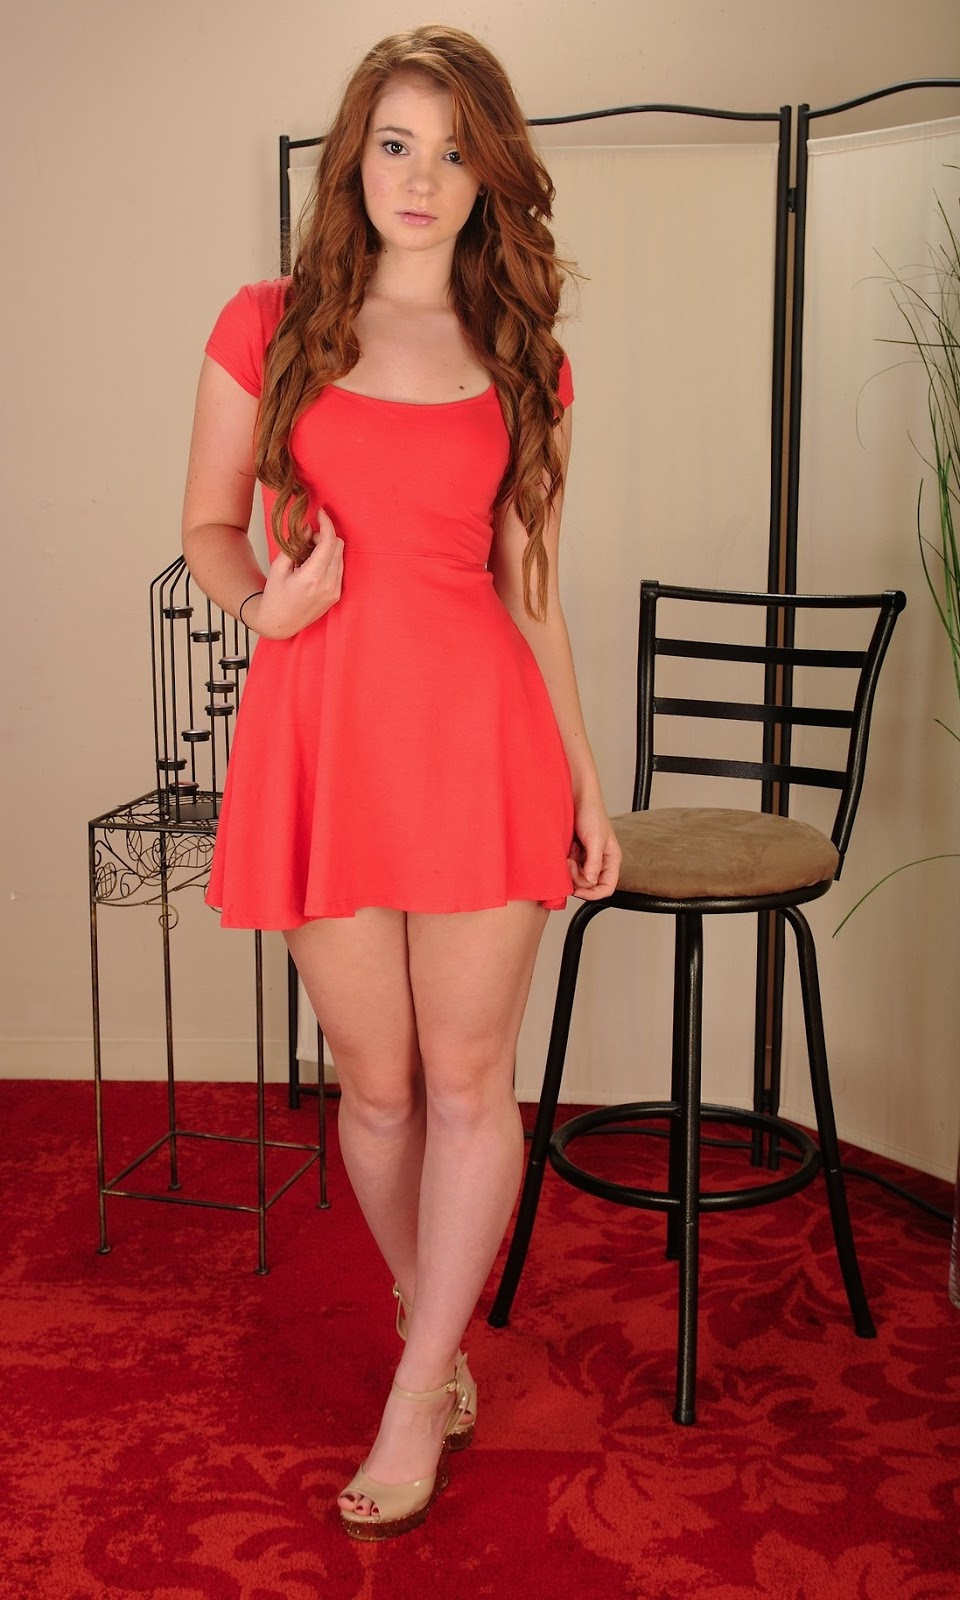 Red Clothes Ready for Do it - Brown Hair Girls of America -  Hot Hollywood Girls Actress White Curves in Hollywood Beauty Girls